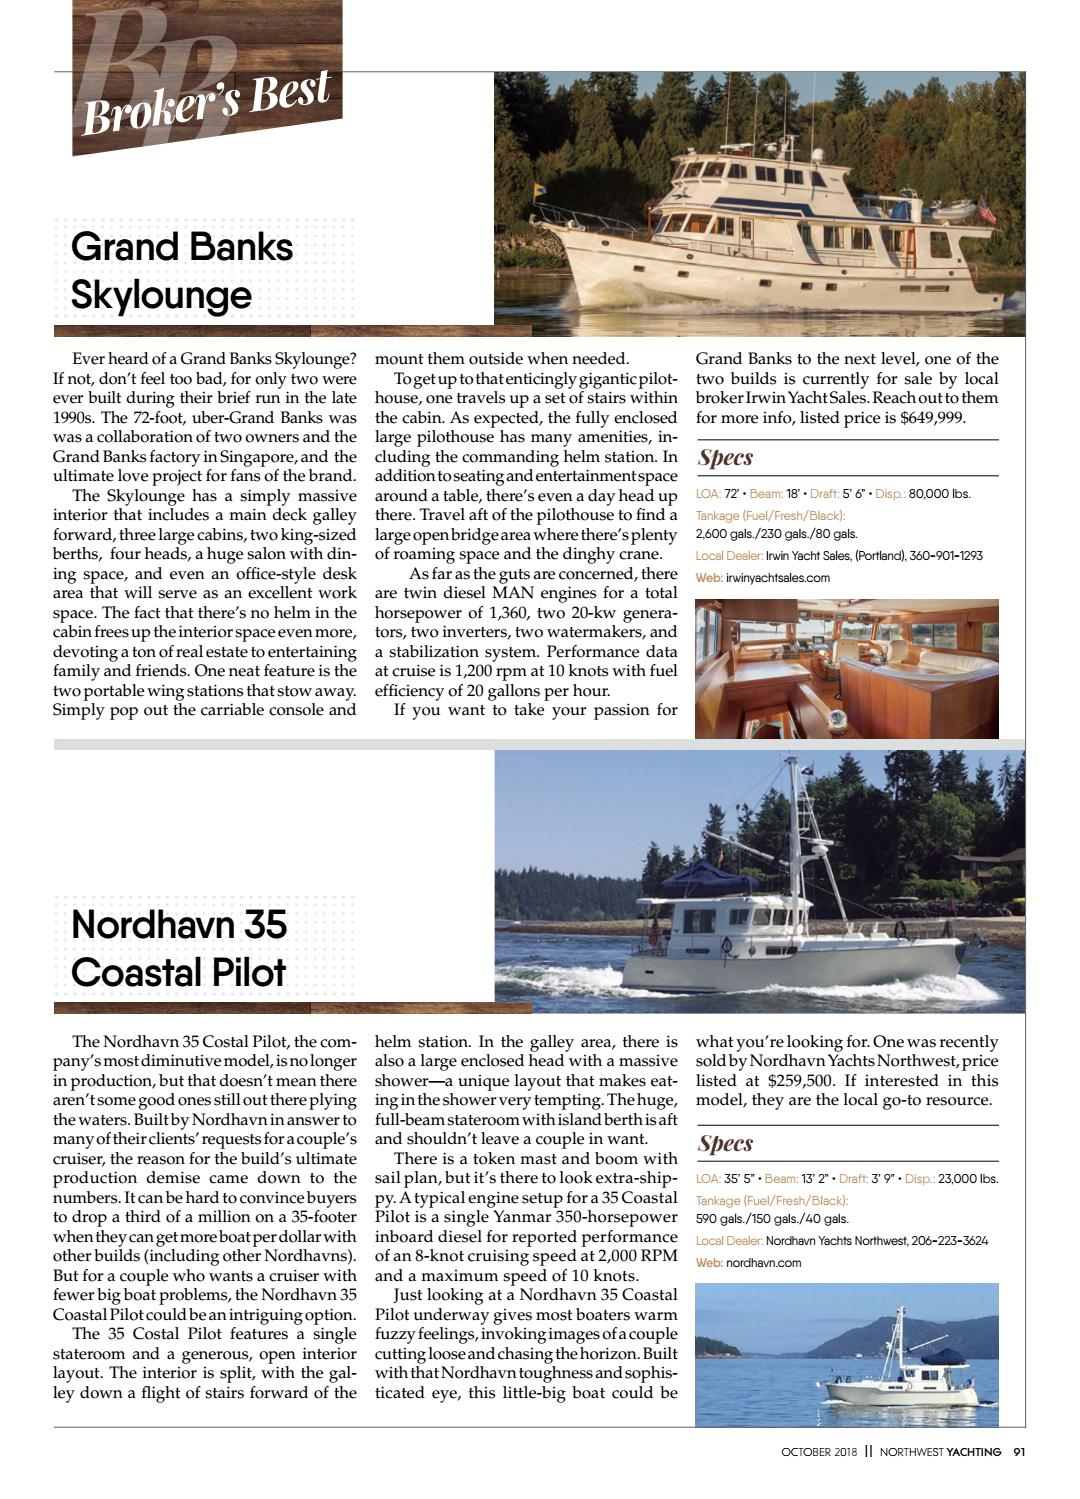 NW Yachting October 2018 by Northwest Yachting - issuu